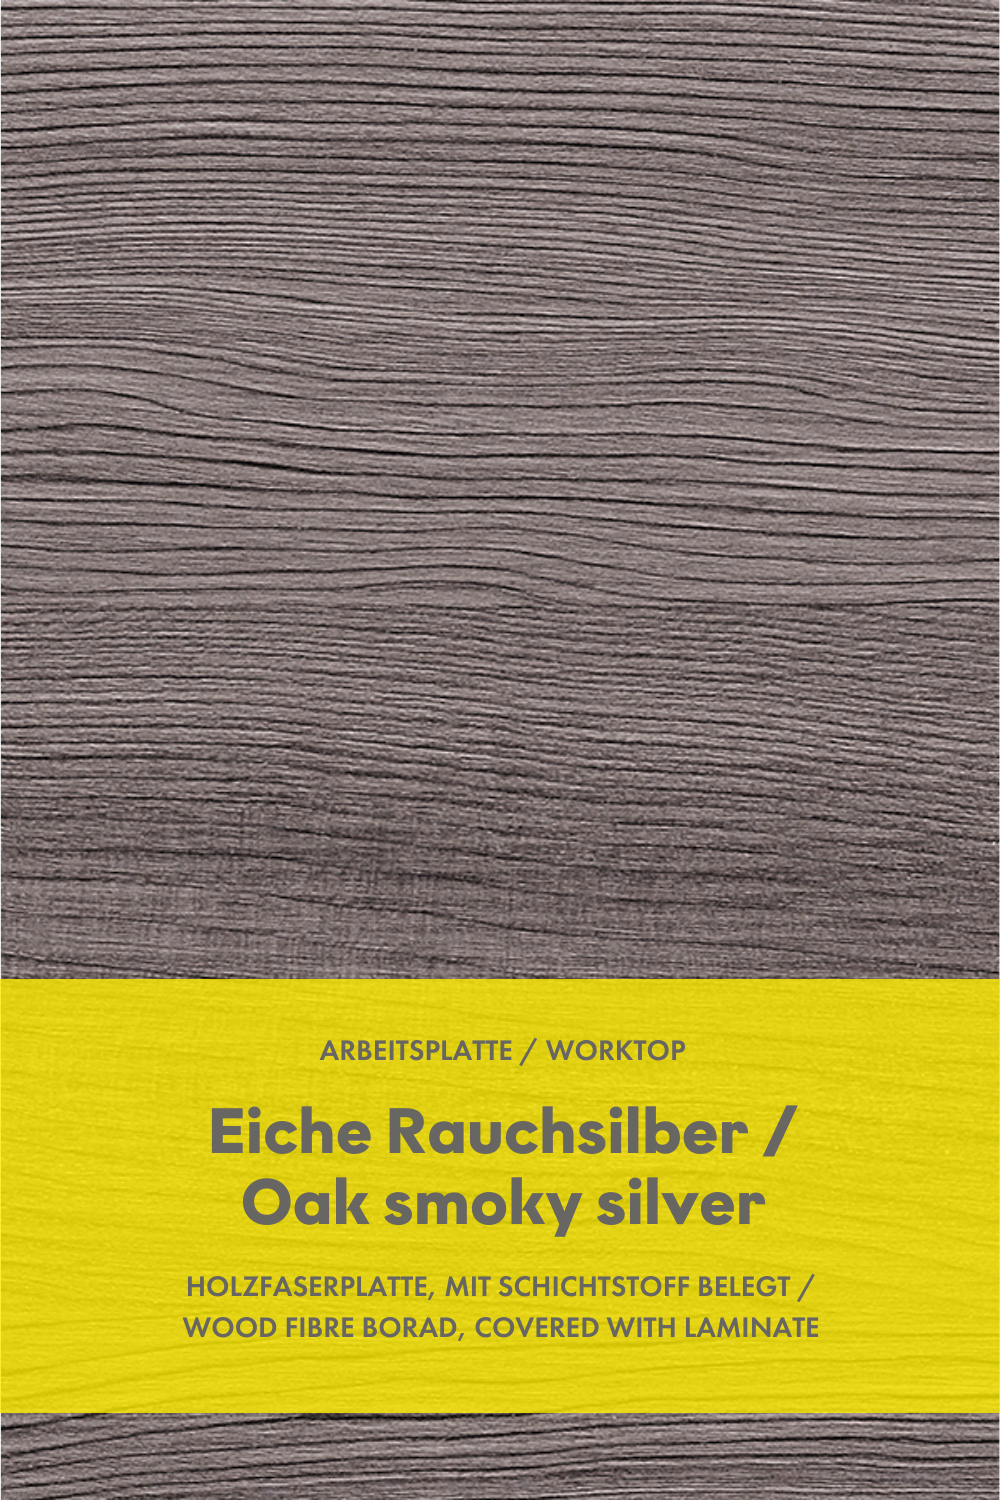 Kuchen Arbeitsplatte Eiche Rauchsilber Kitchen Worktop Oak Smoky Silver In 2020 Design Stylish Designer Open Plan Kitchen